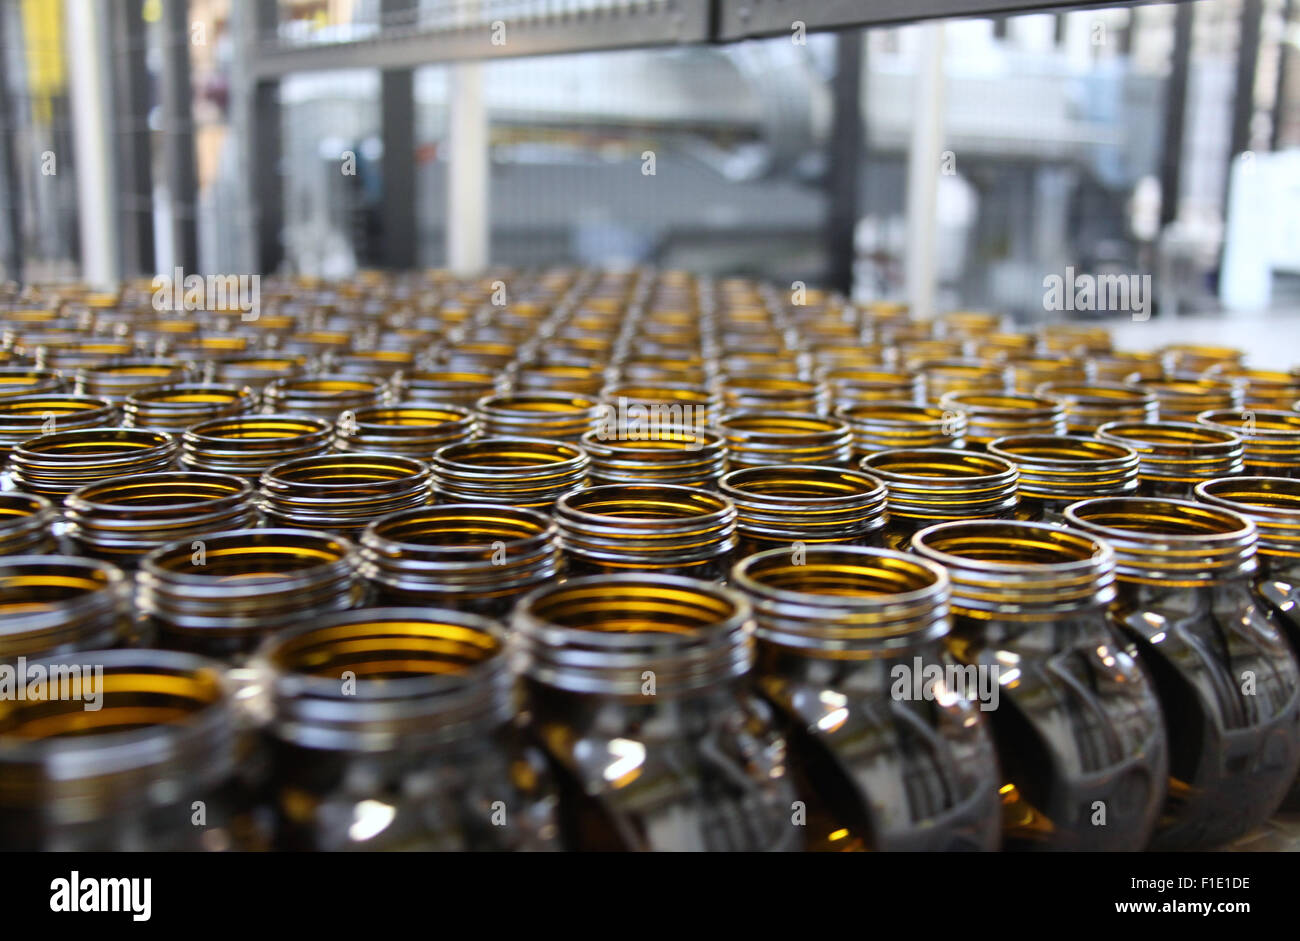 Marmite jars on the production line at the Unilever factory at Burton upon Trent in Staffordshire Stock Photo